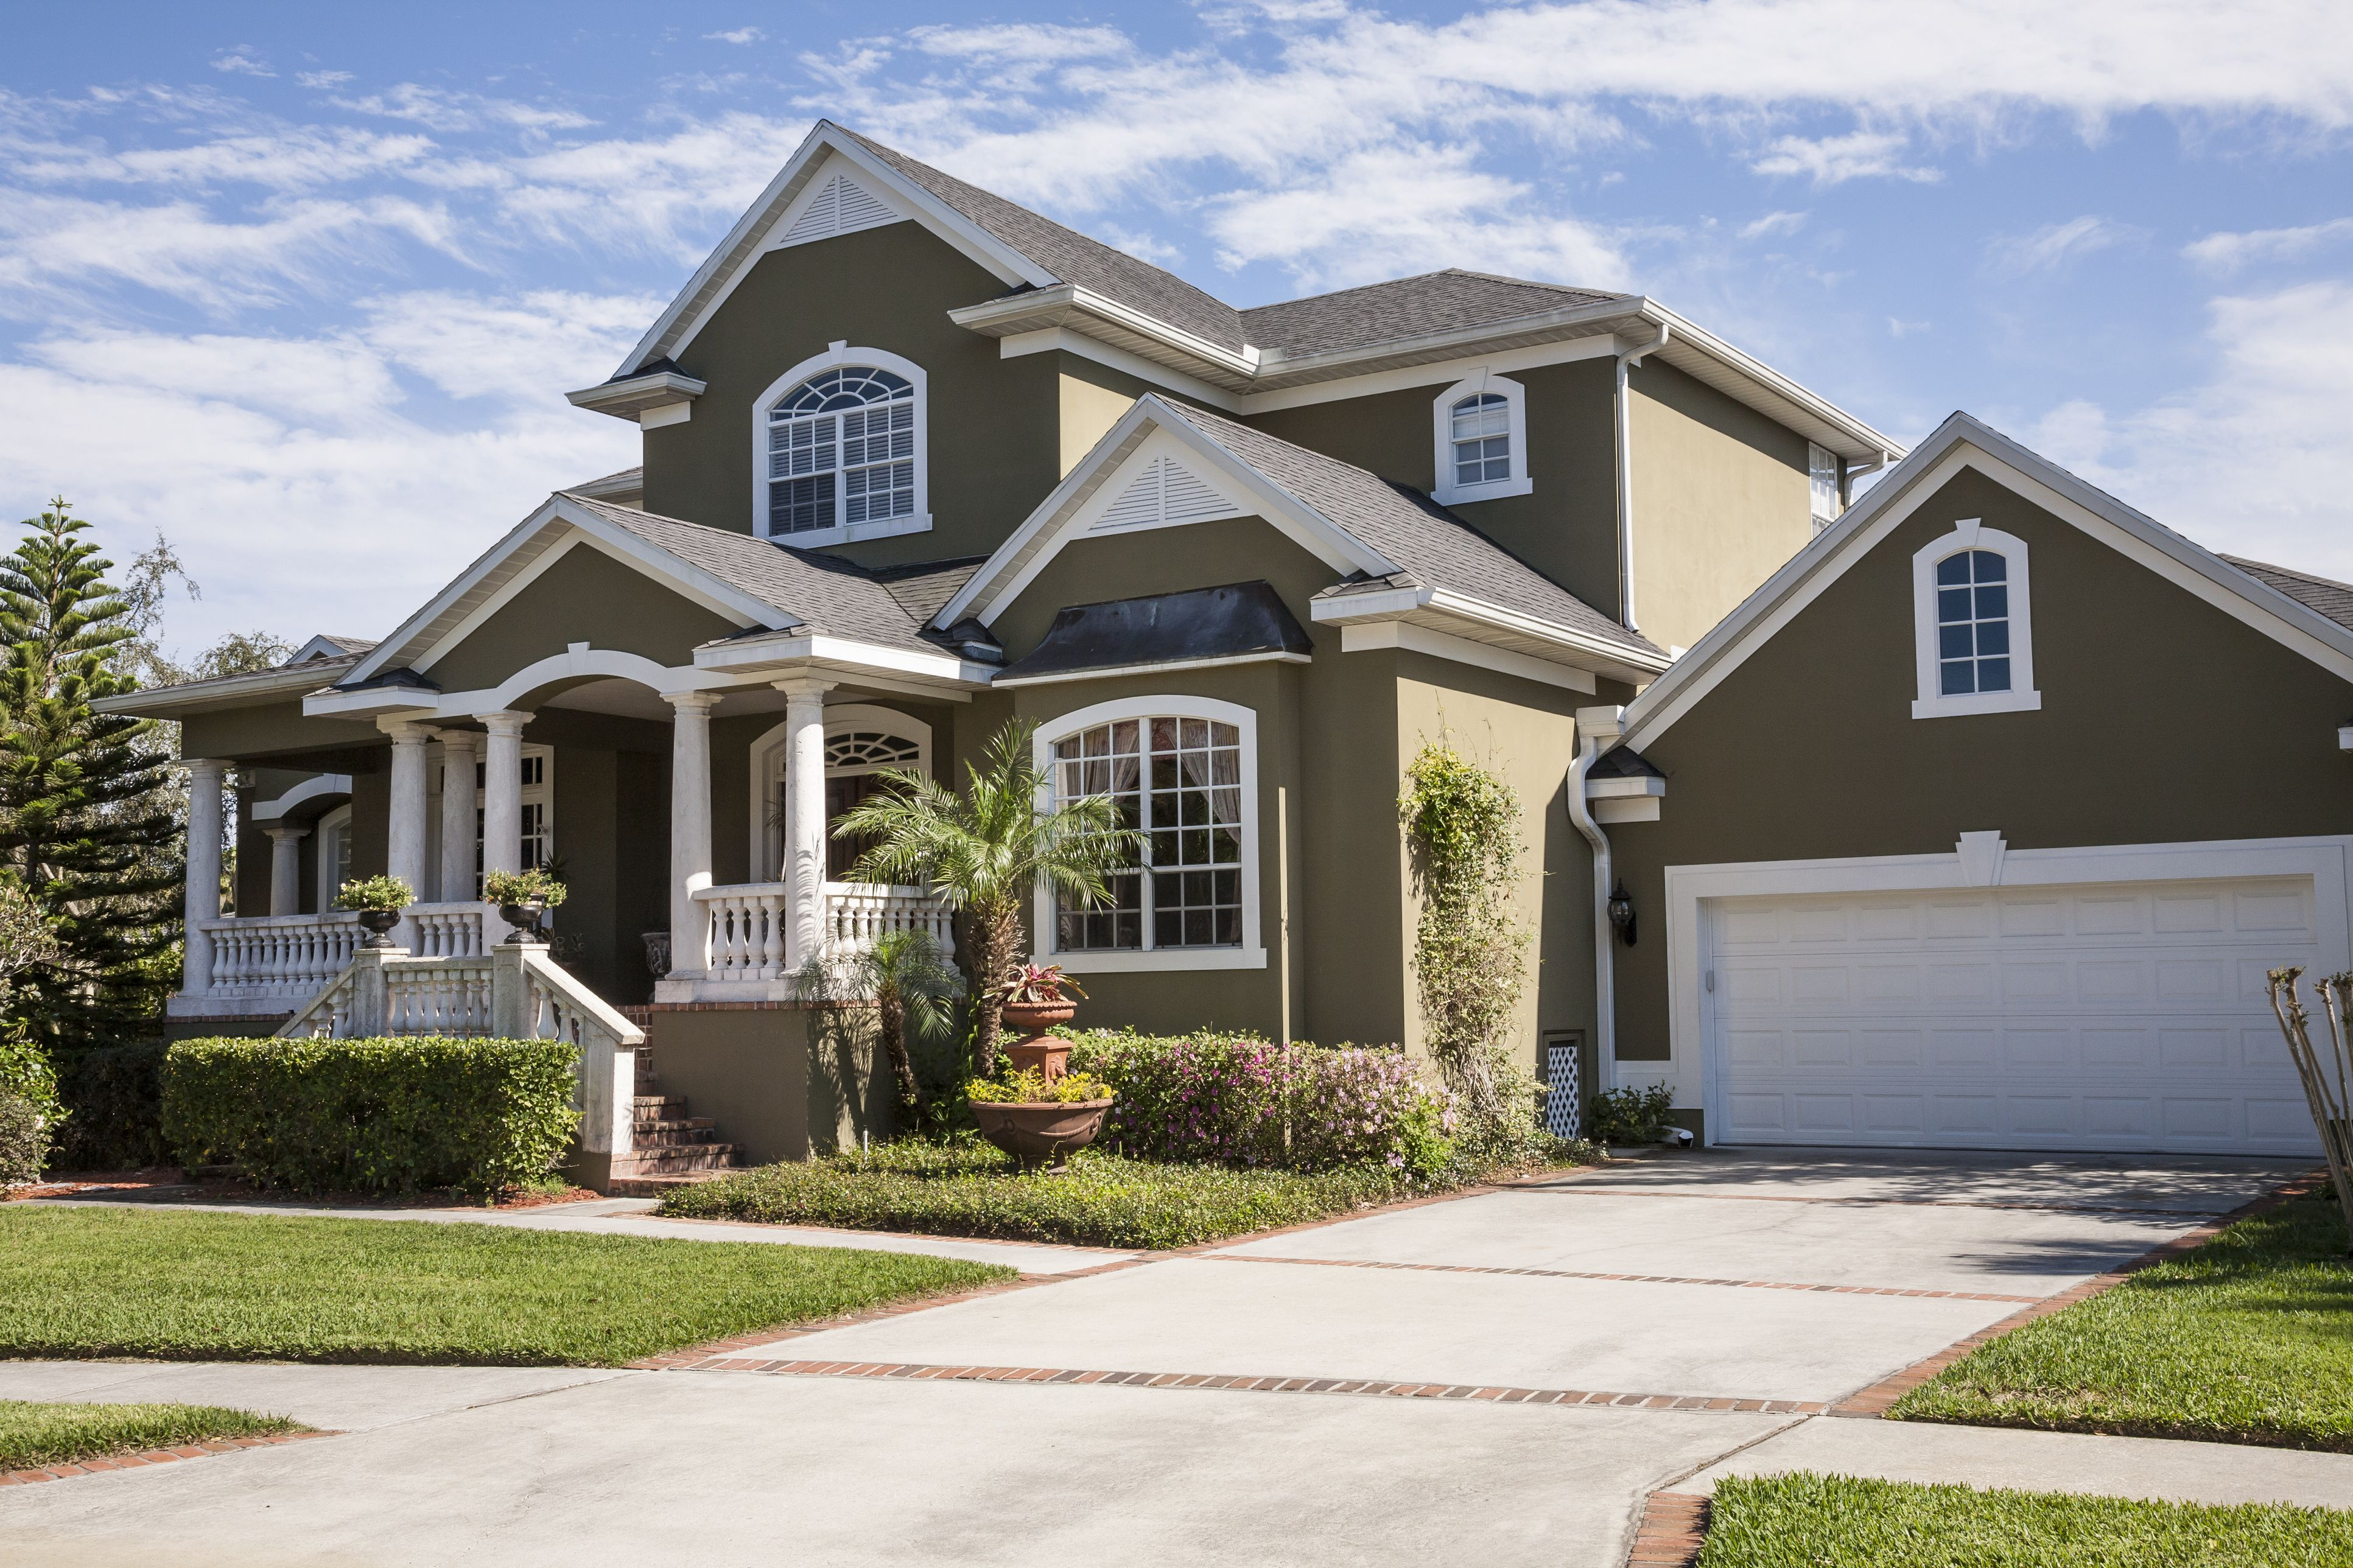 How to Use Sweepstakes to Remodel Your Home for Free